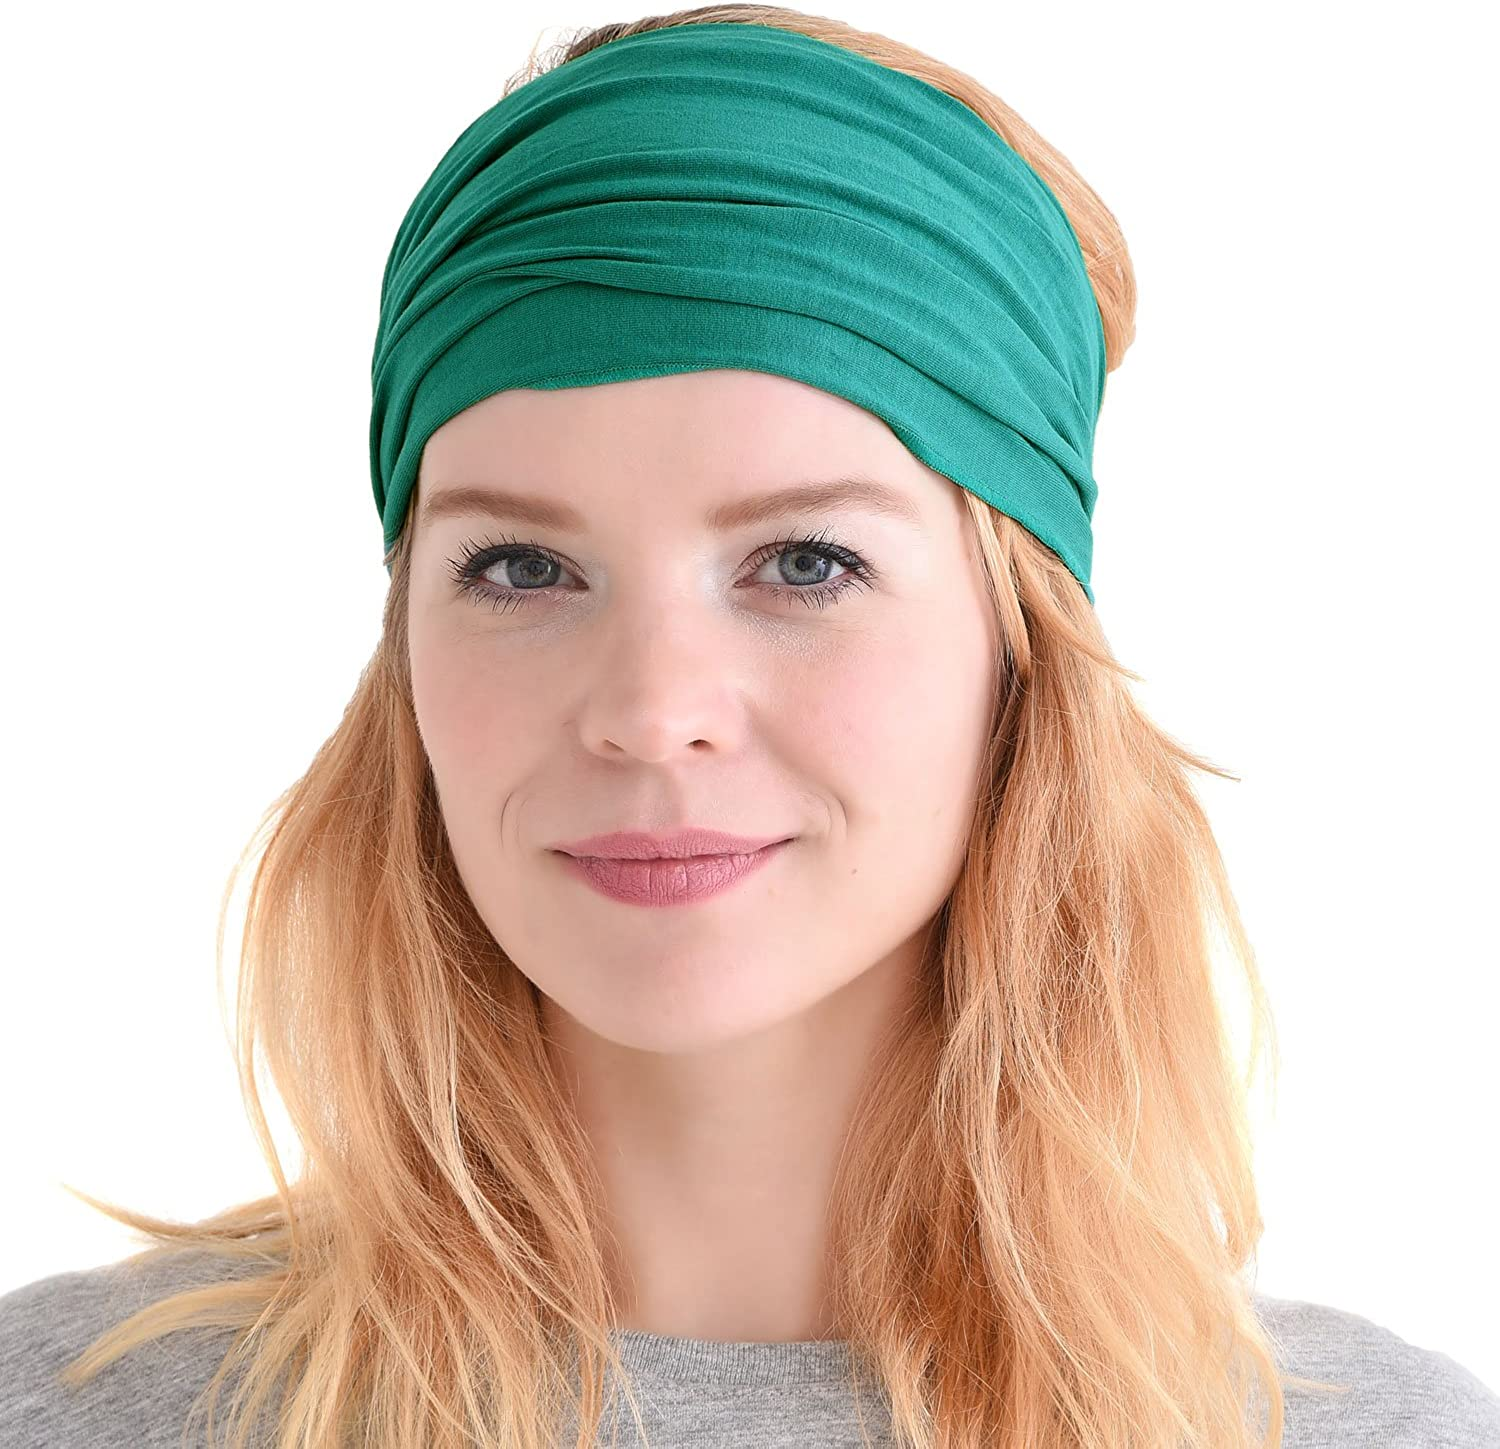 CCHARM Headband Bandana Japanese Style - Mens Head Wrap Womens Hair Band by Casualbox